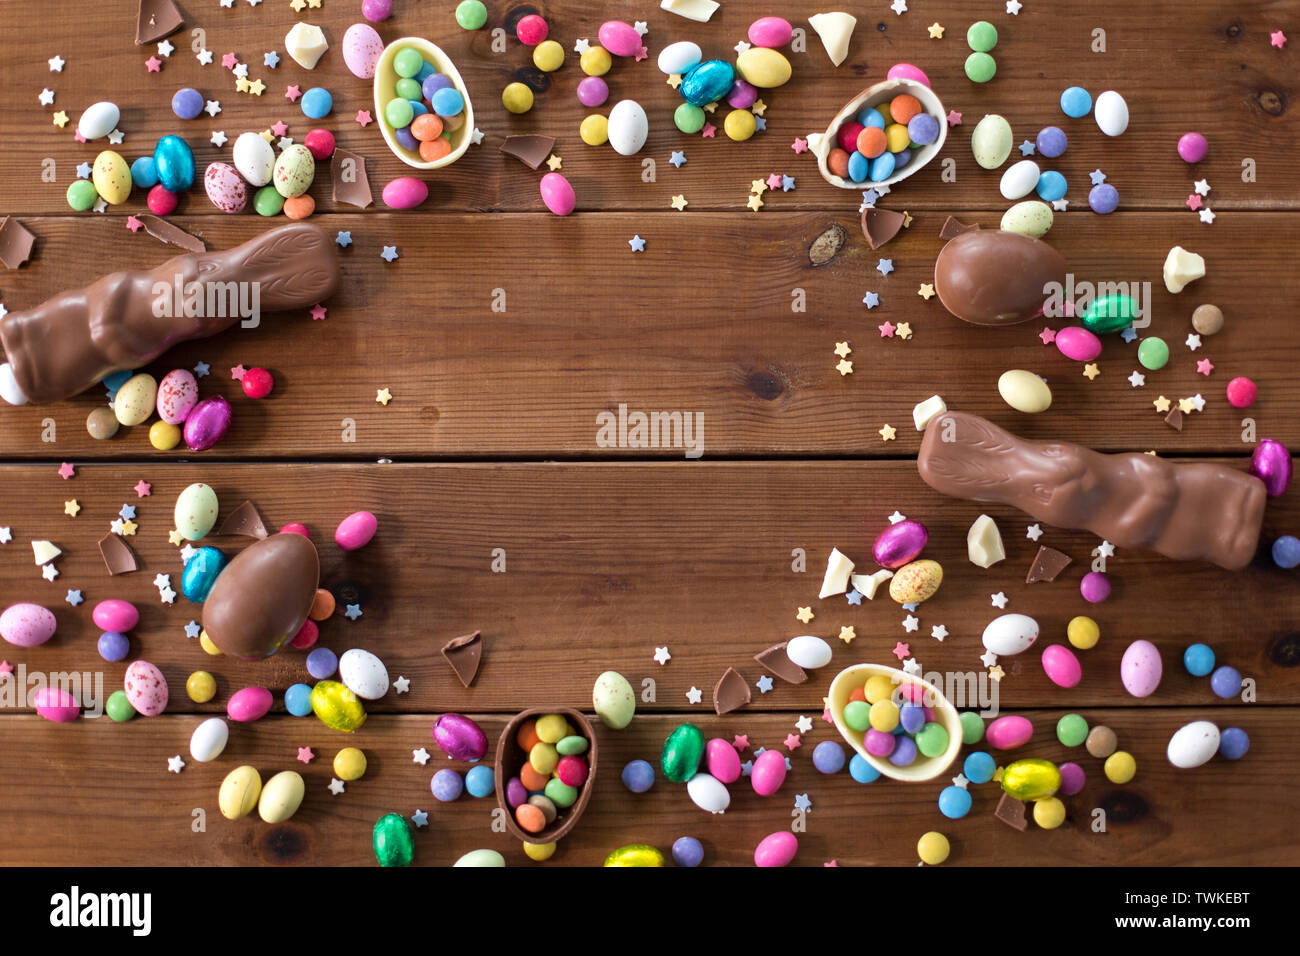 chocolate eggs, easter bunnies and candies on wood - Stock Image